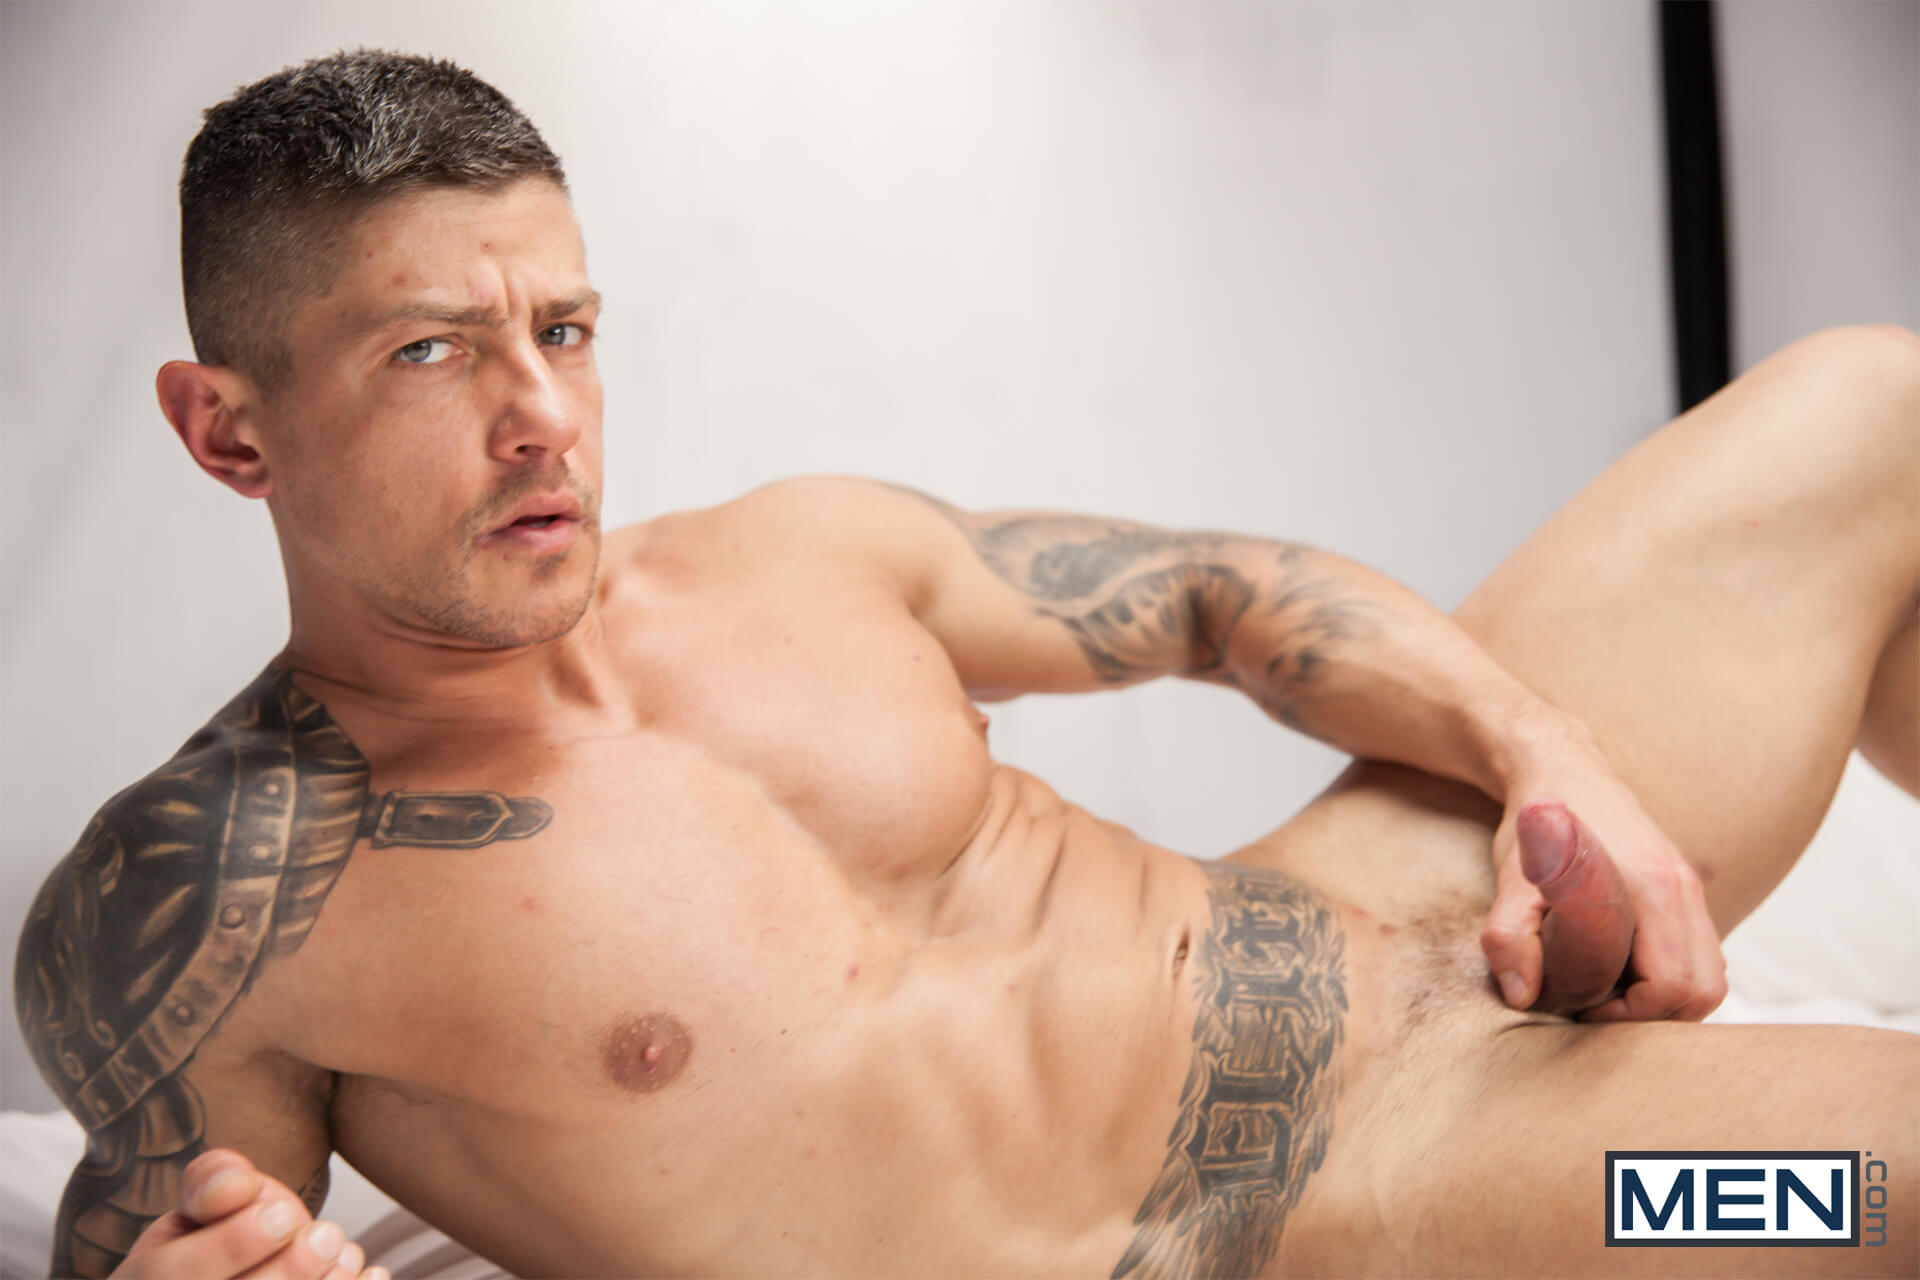 Goran gay hot daddy dude men porn